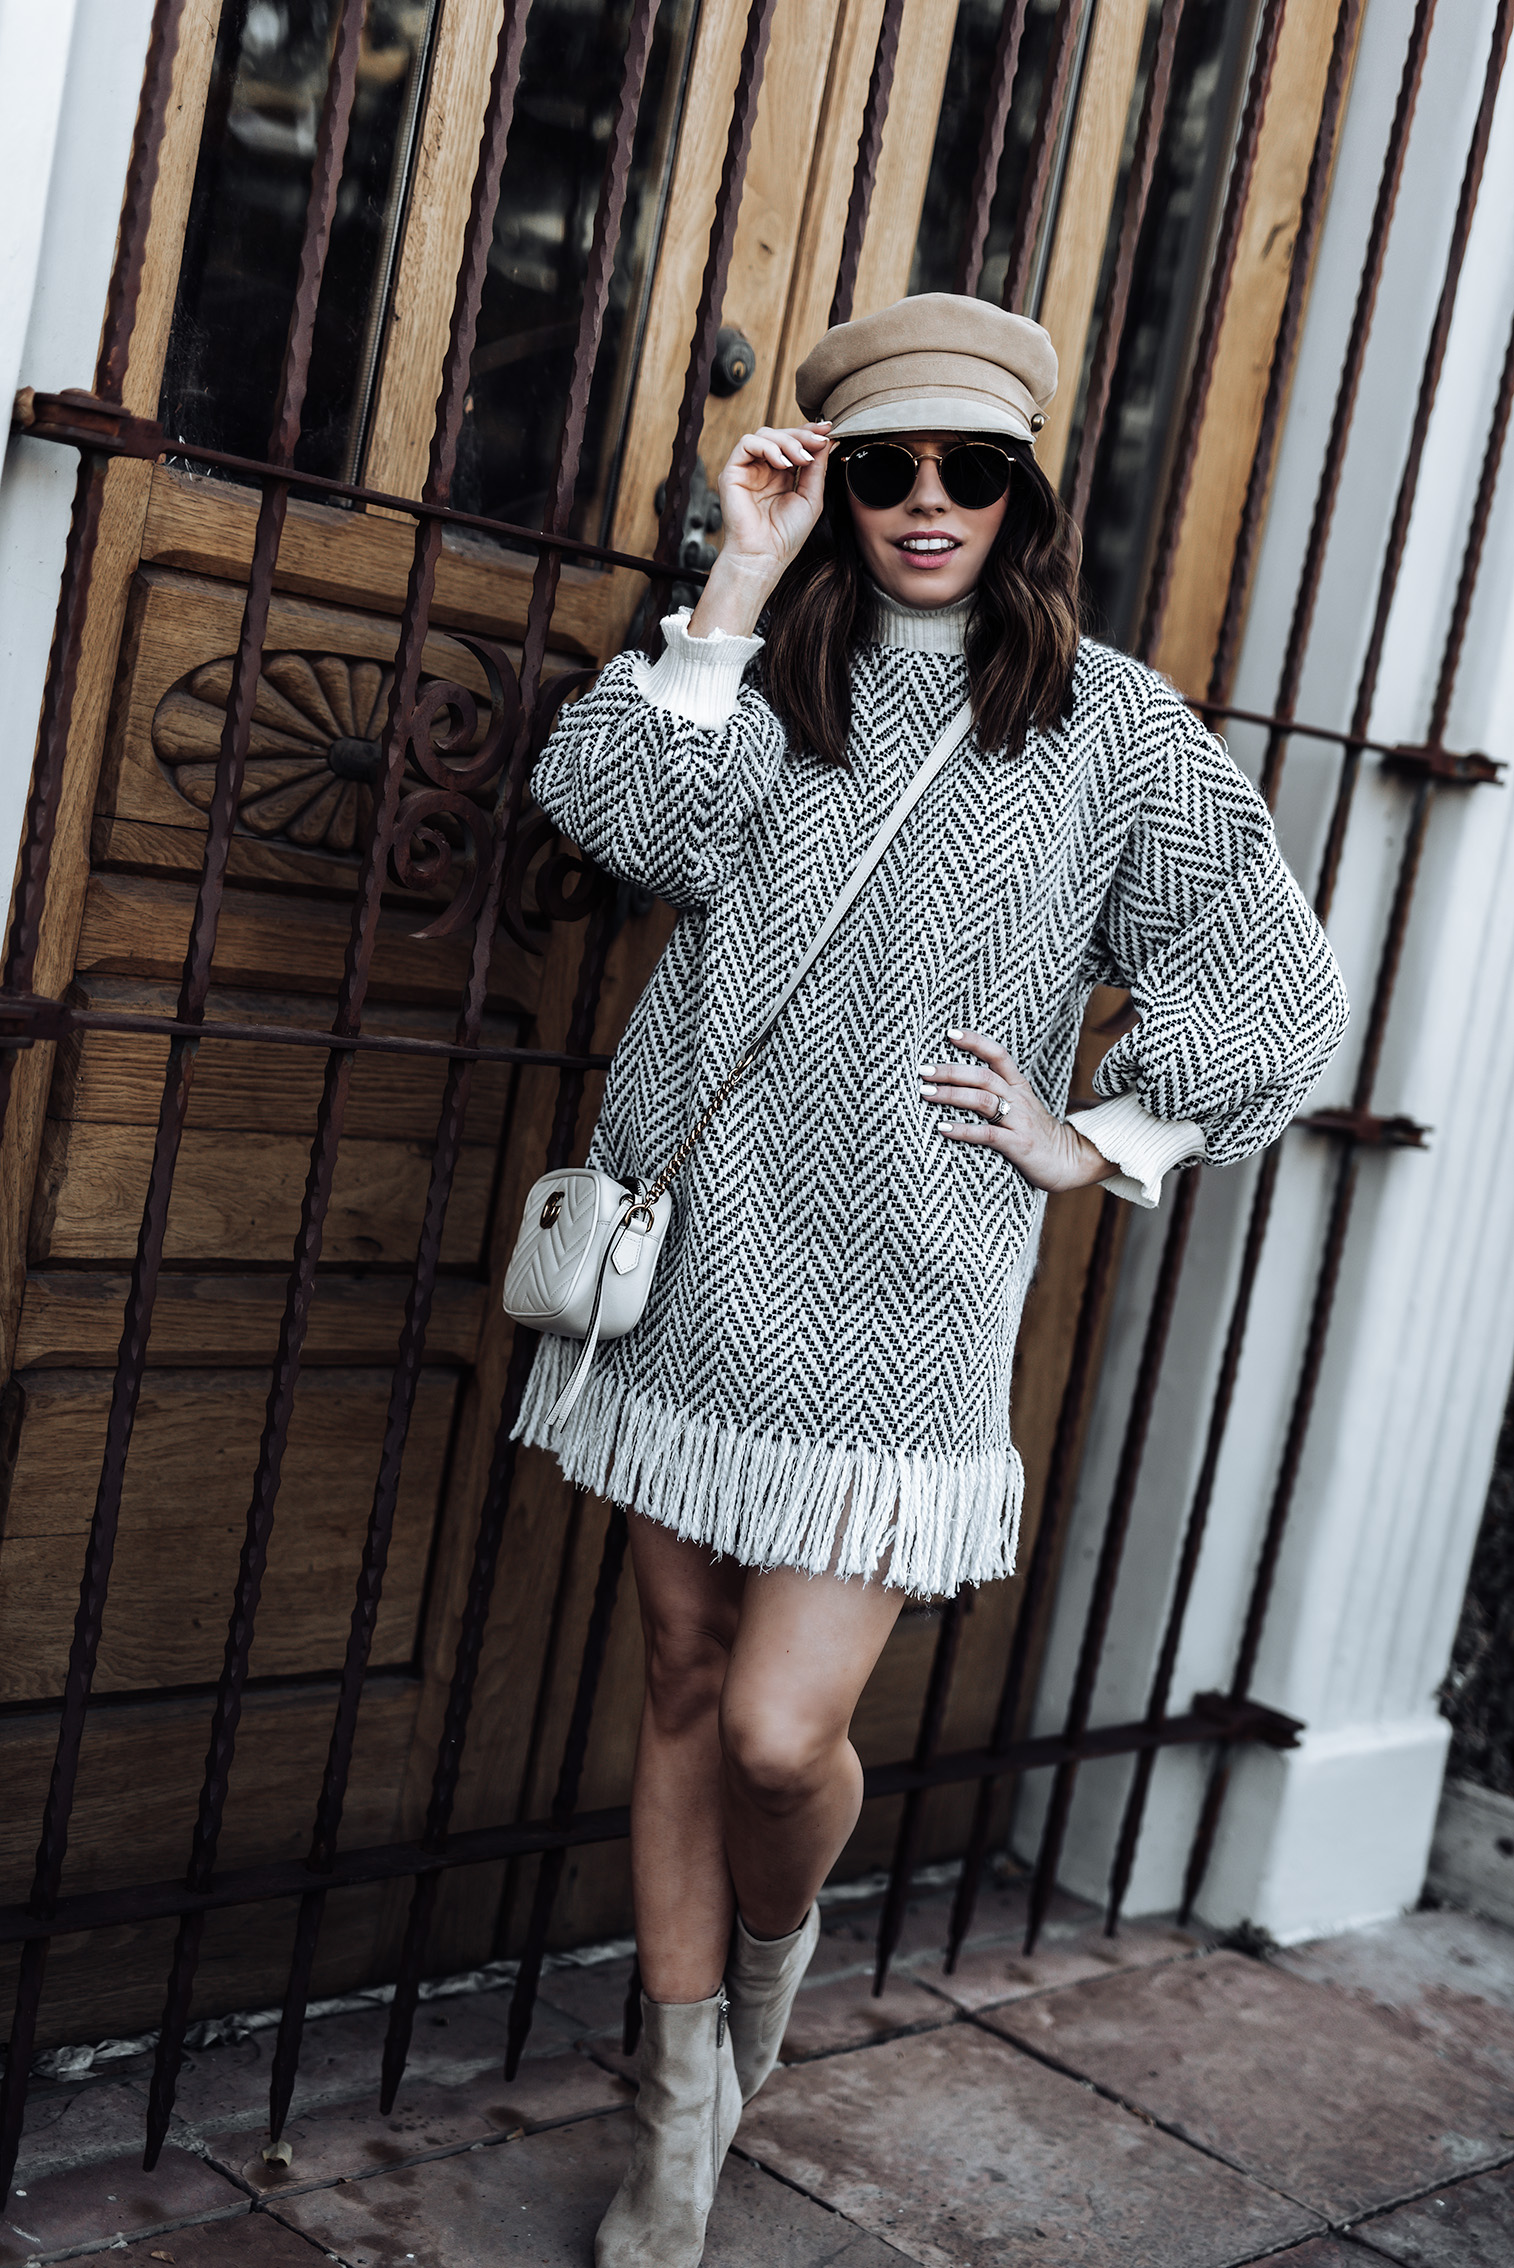 Ciara Zig Zag dress {C/O} Storets | Nude Ankle Boots (similar style here) | Lack of Color Lola Cap in Natural | Gucci Marmont bag in white | Ray-Ban Sunglasses | #streetstyle #sweaterdress #ankleboots #guccimarmont #lackofcolor